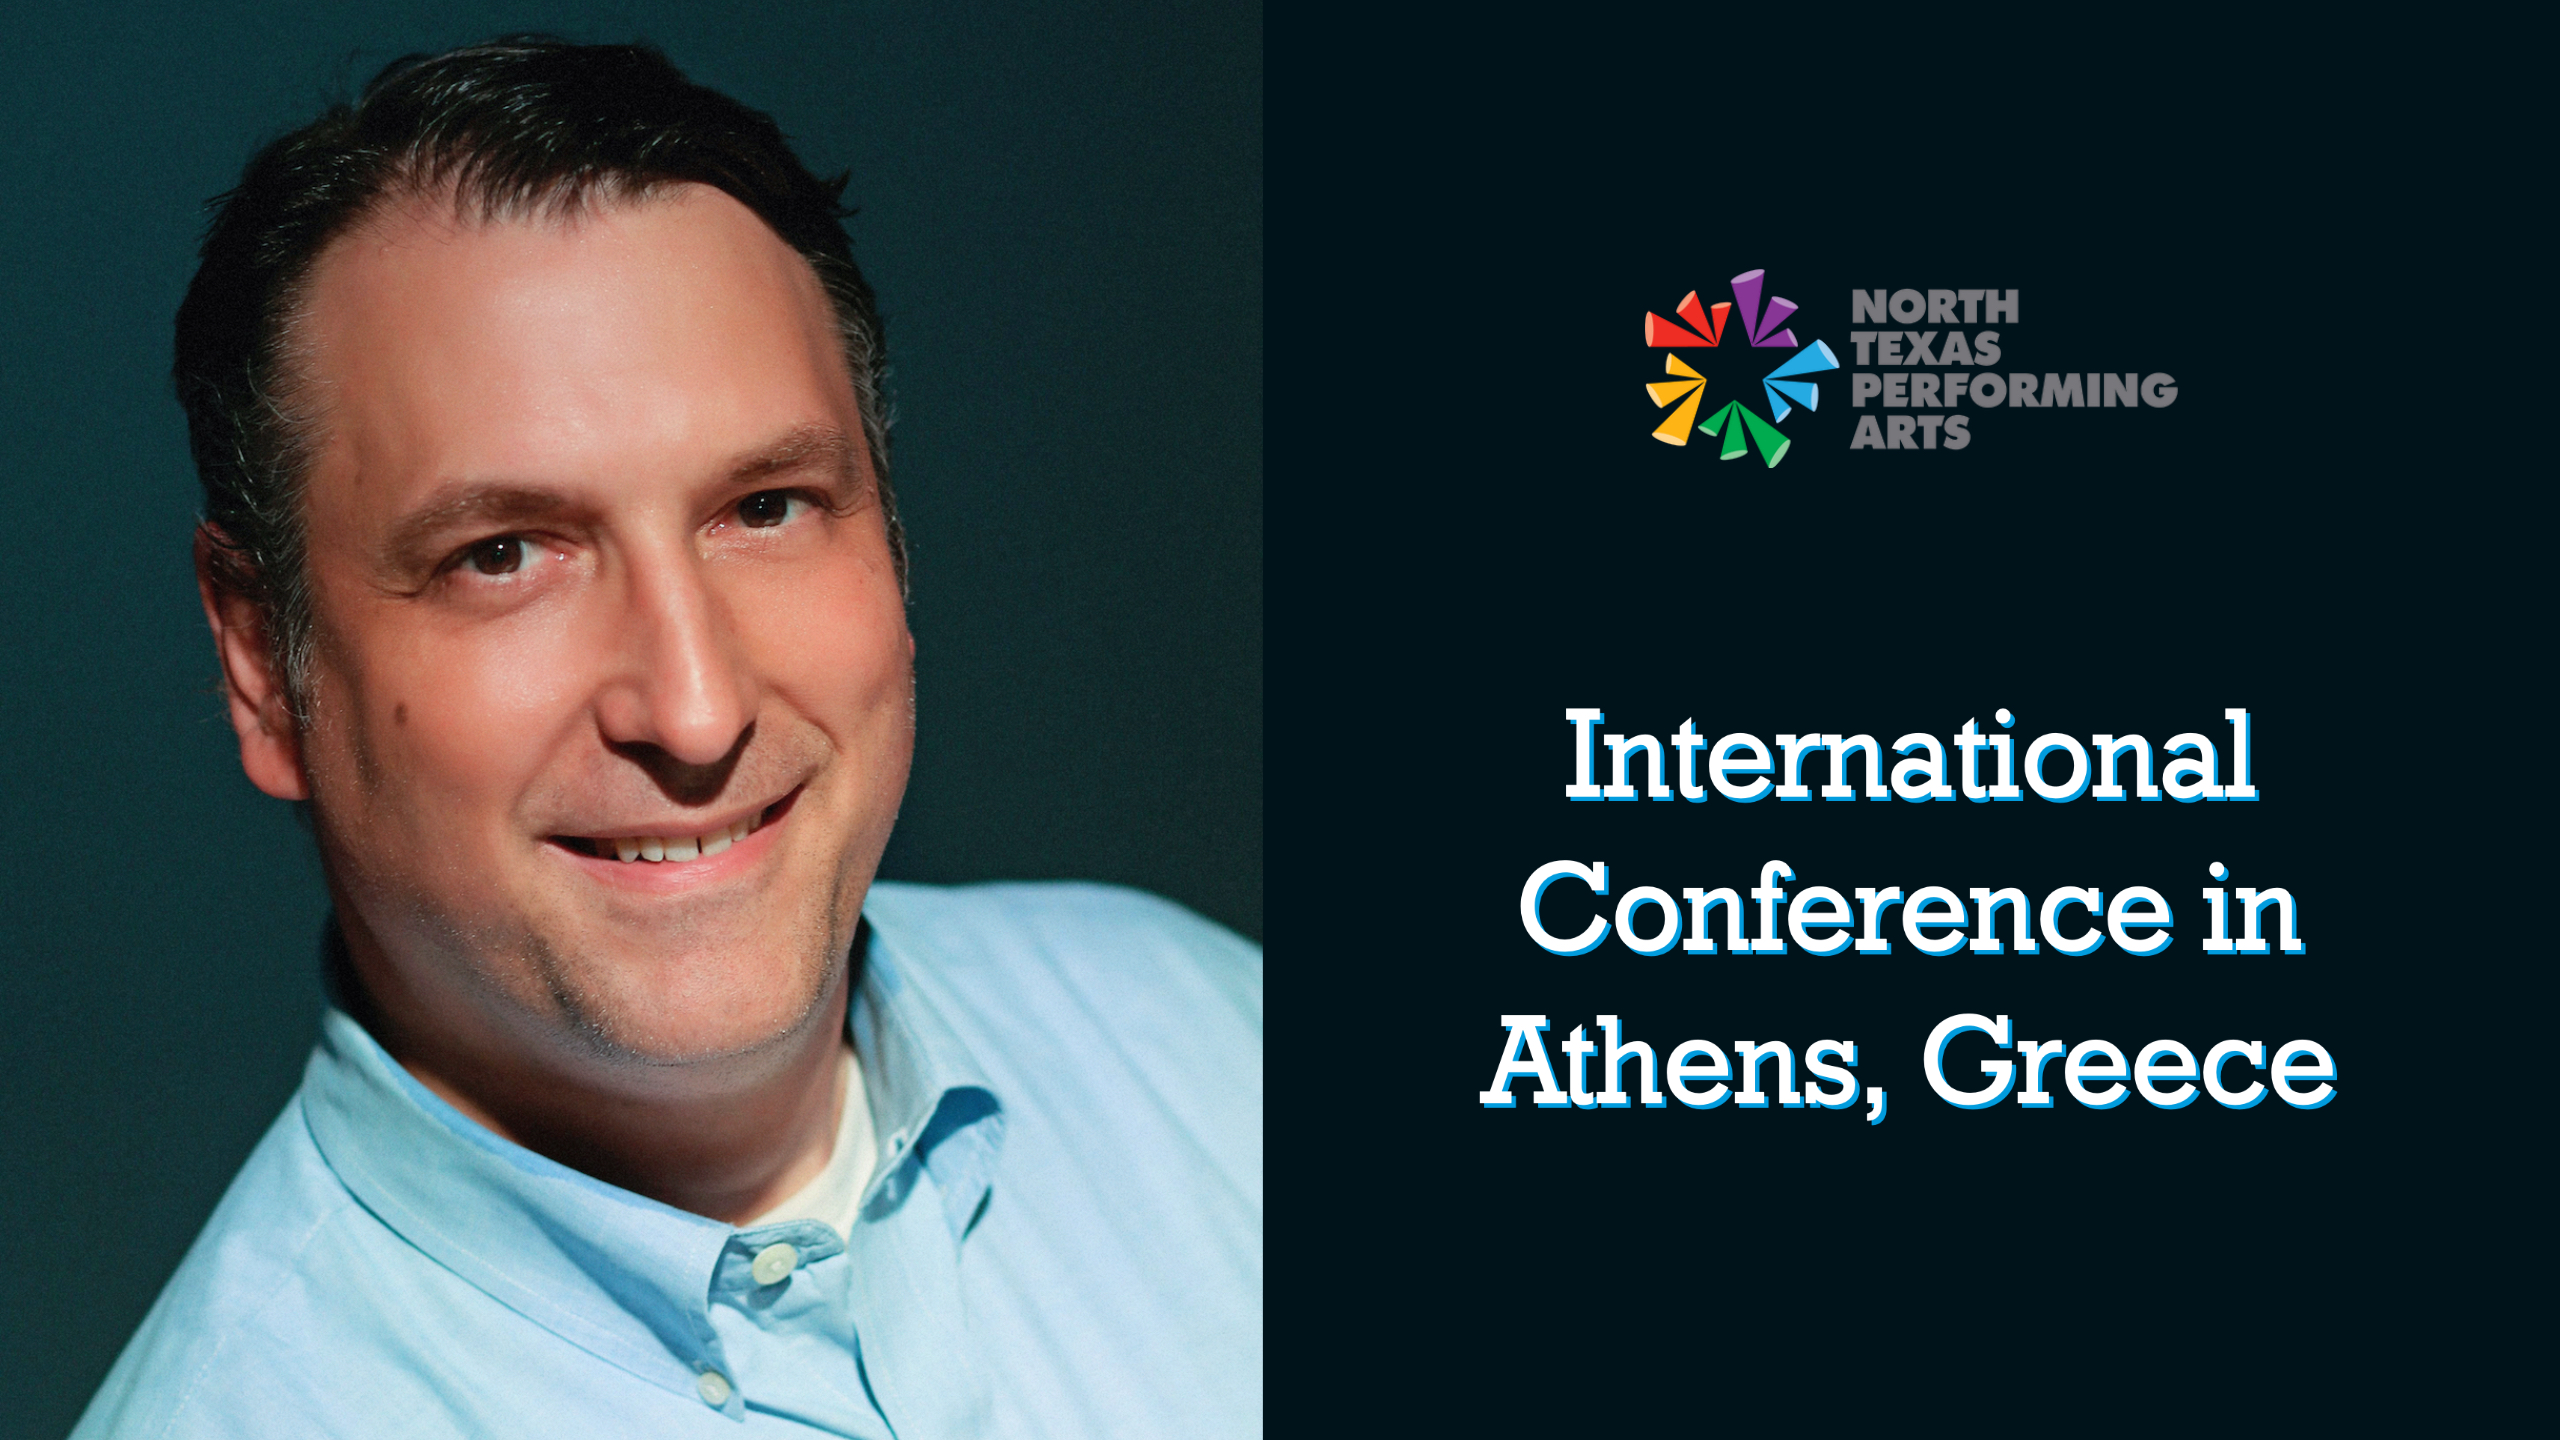 Blog Article. NTPA's Academy Head of School, Mike Mazur to speak at the International's Conference in Athens Greece